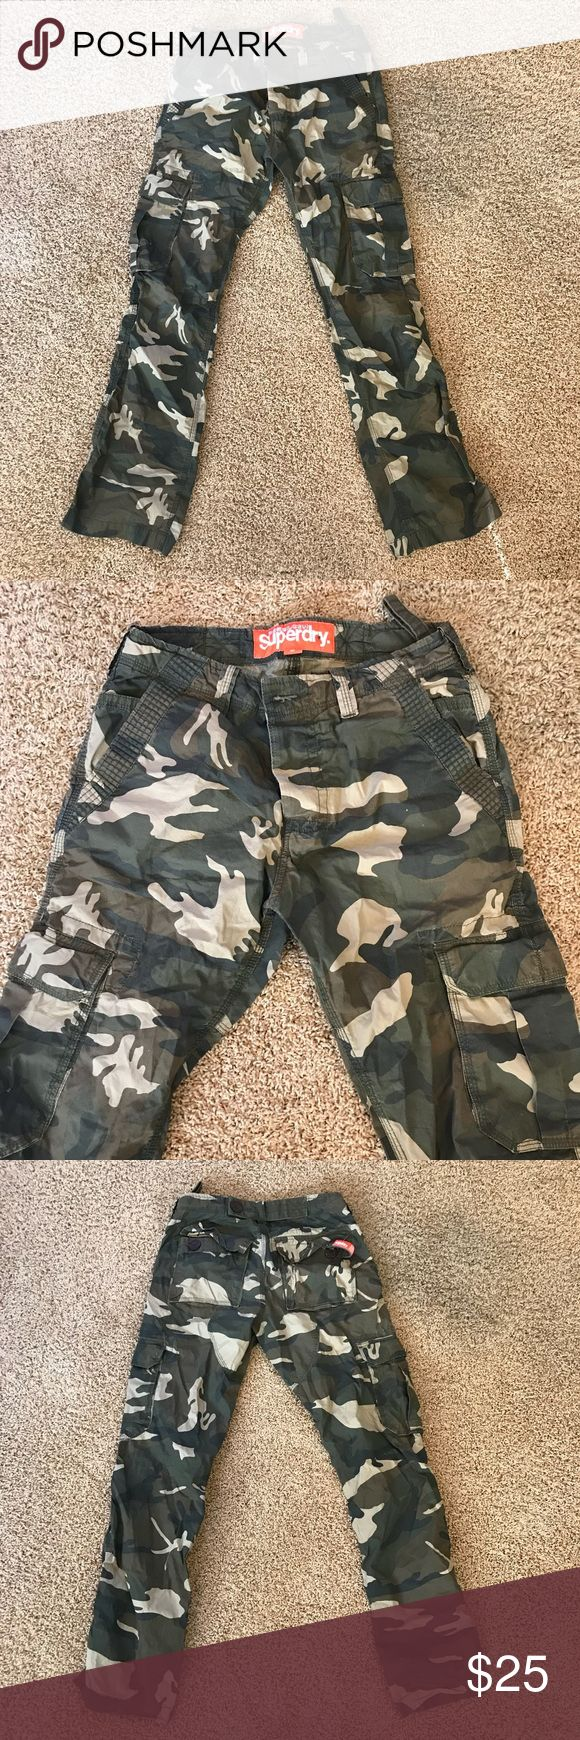 Men's Superdry Camouflage Camo Cargo Pants S Small Up for sale is a pair of Men's Superdry Camo pants in a size small. These pants are in very good condition and offer plenty of pockets for storage. Additionally, it has a 3 button fly as well as buttoned pockets on the back. Please feel free to message me with any questions, thanks for looking! :) Superdry Pants Cargo